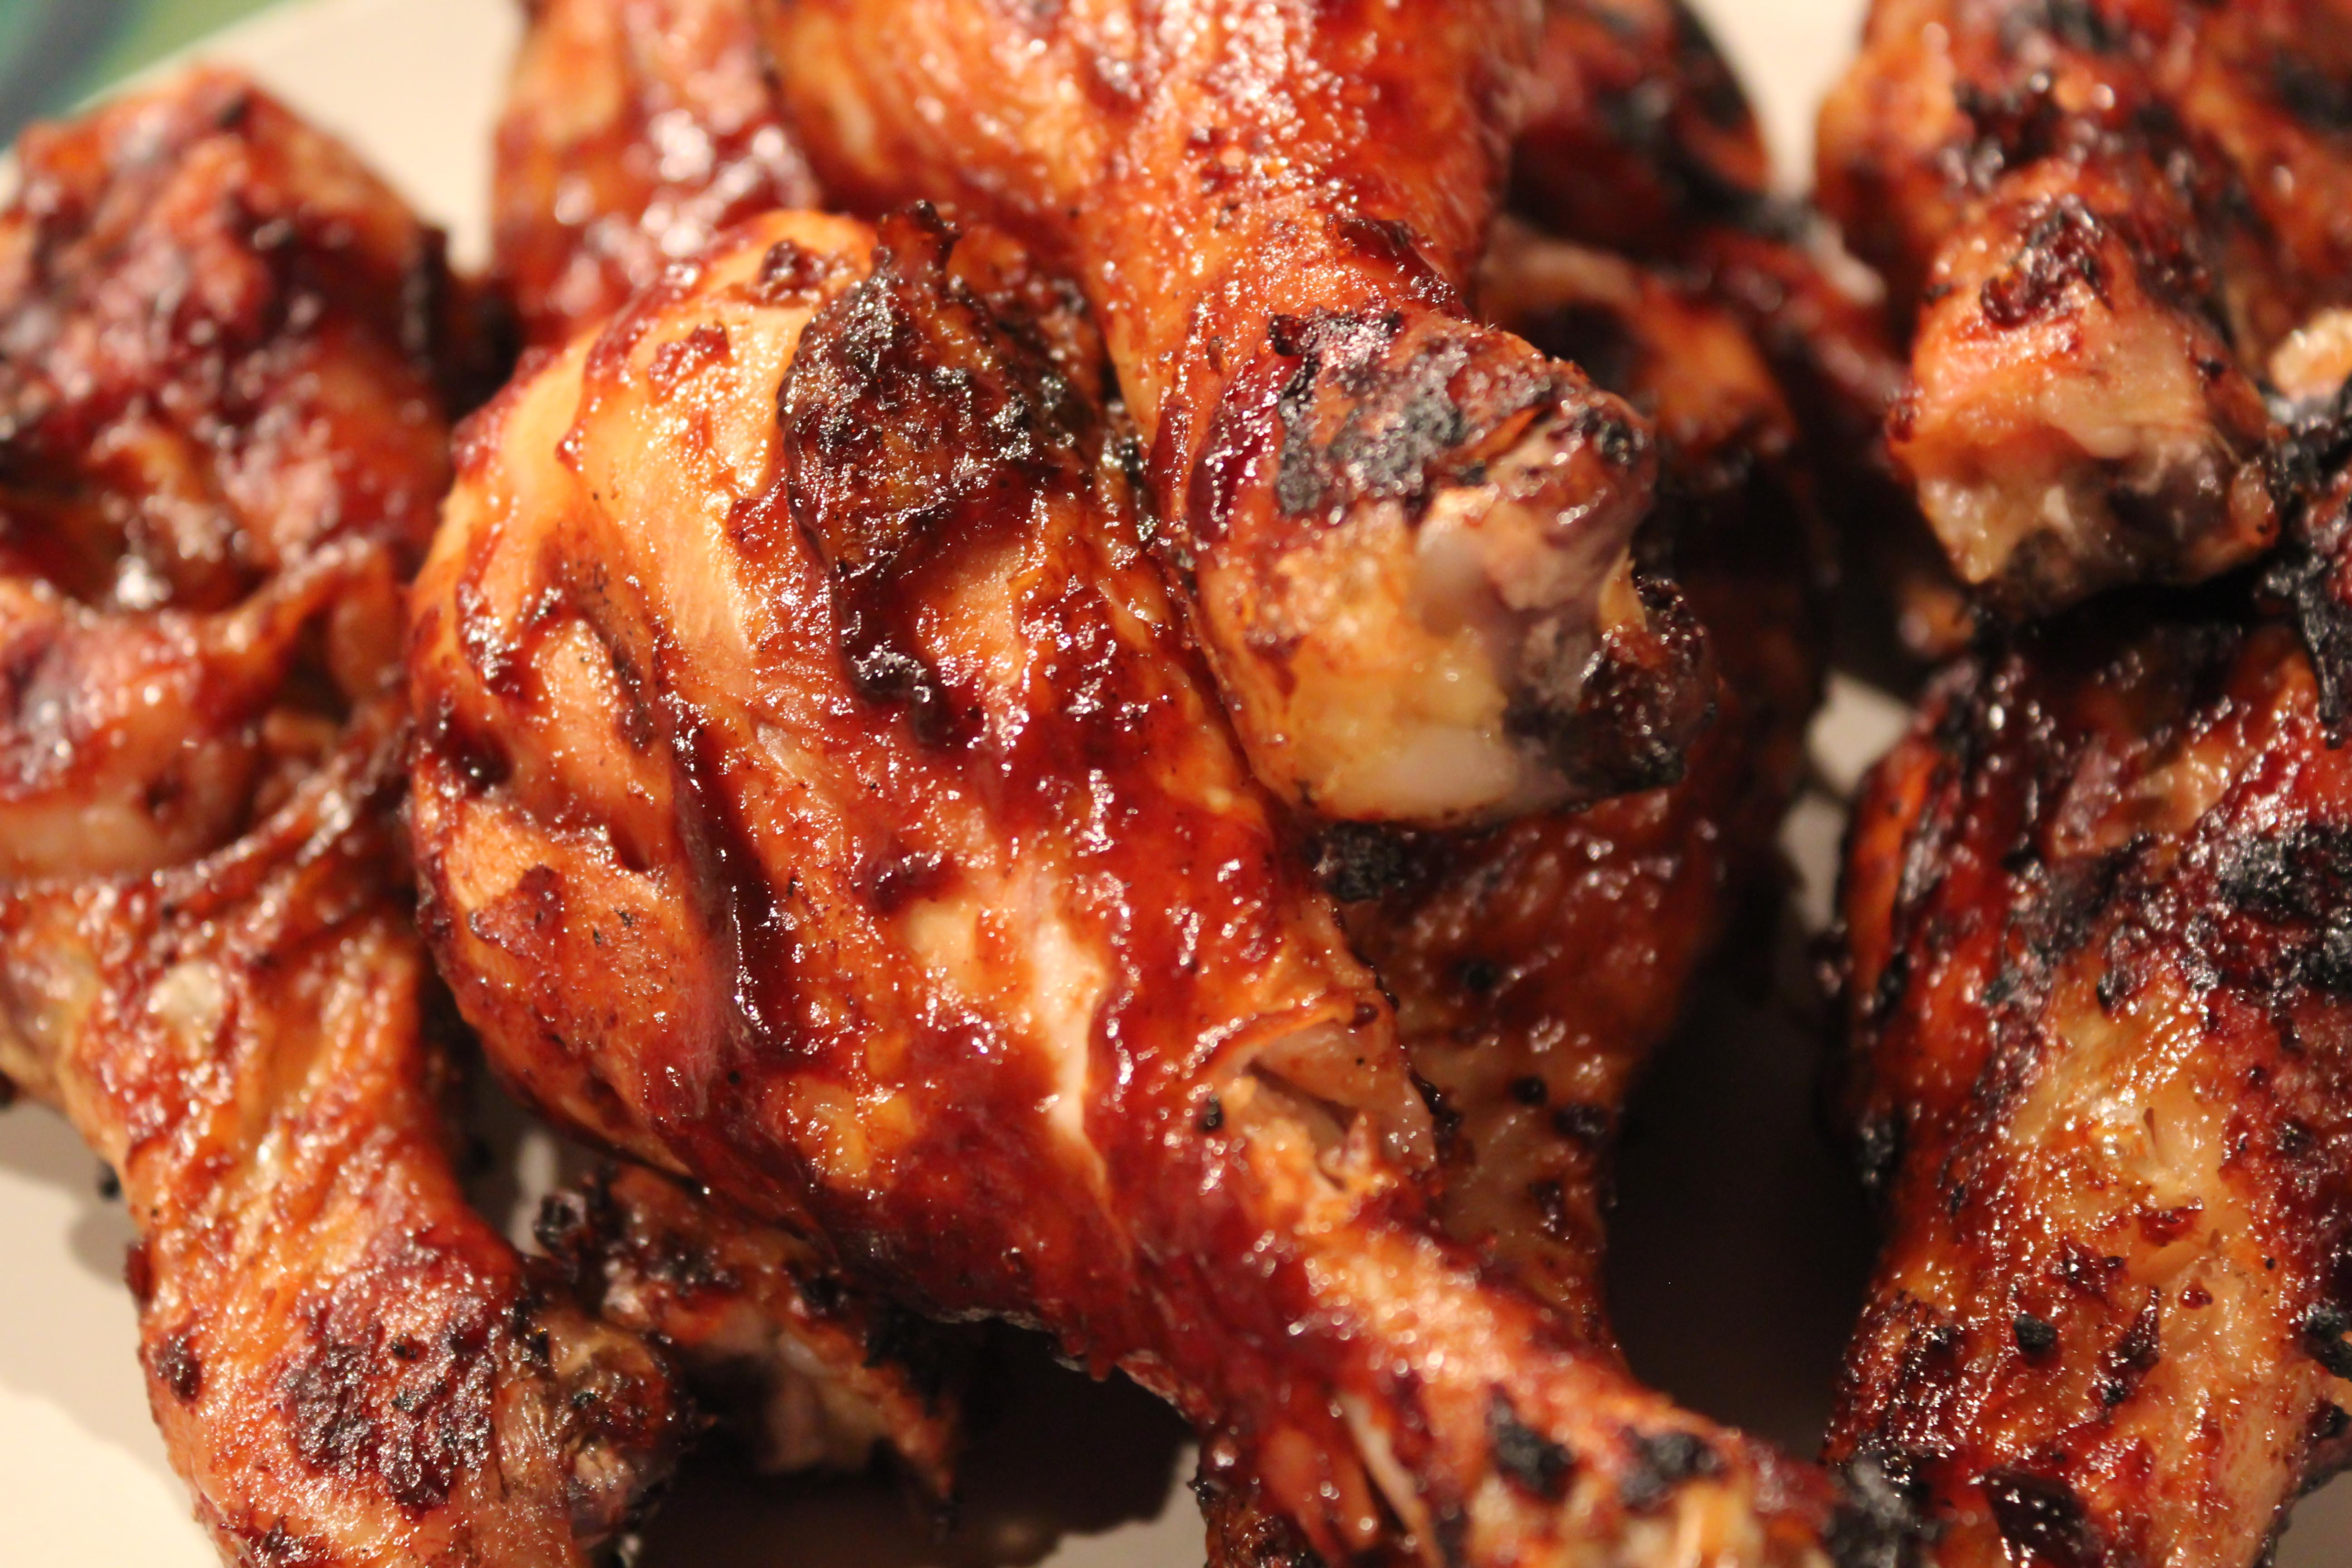 BBQ chicken...my mouth is watering!